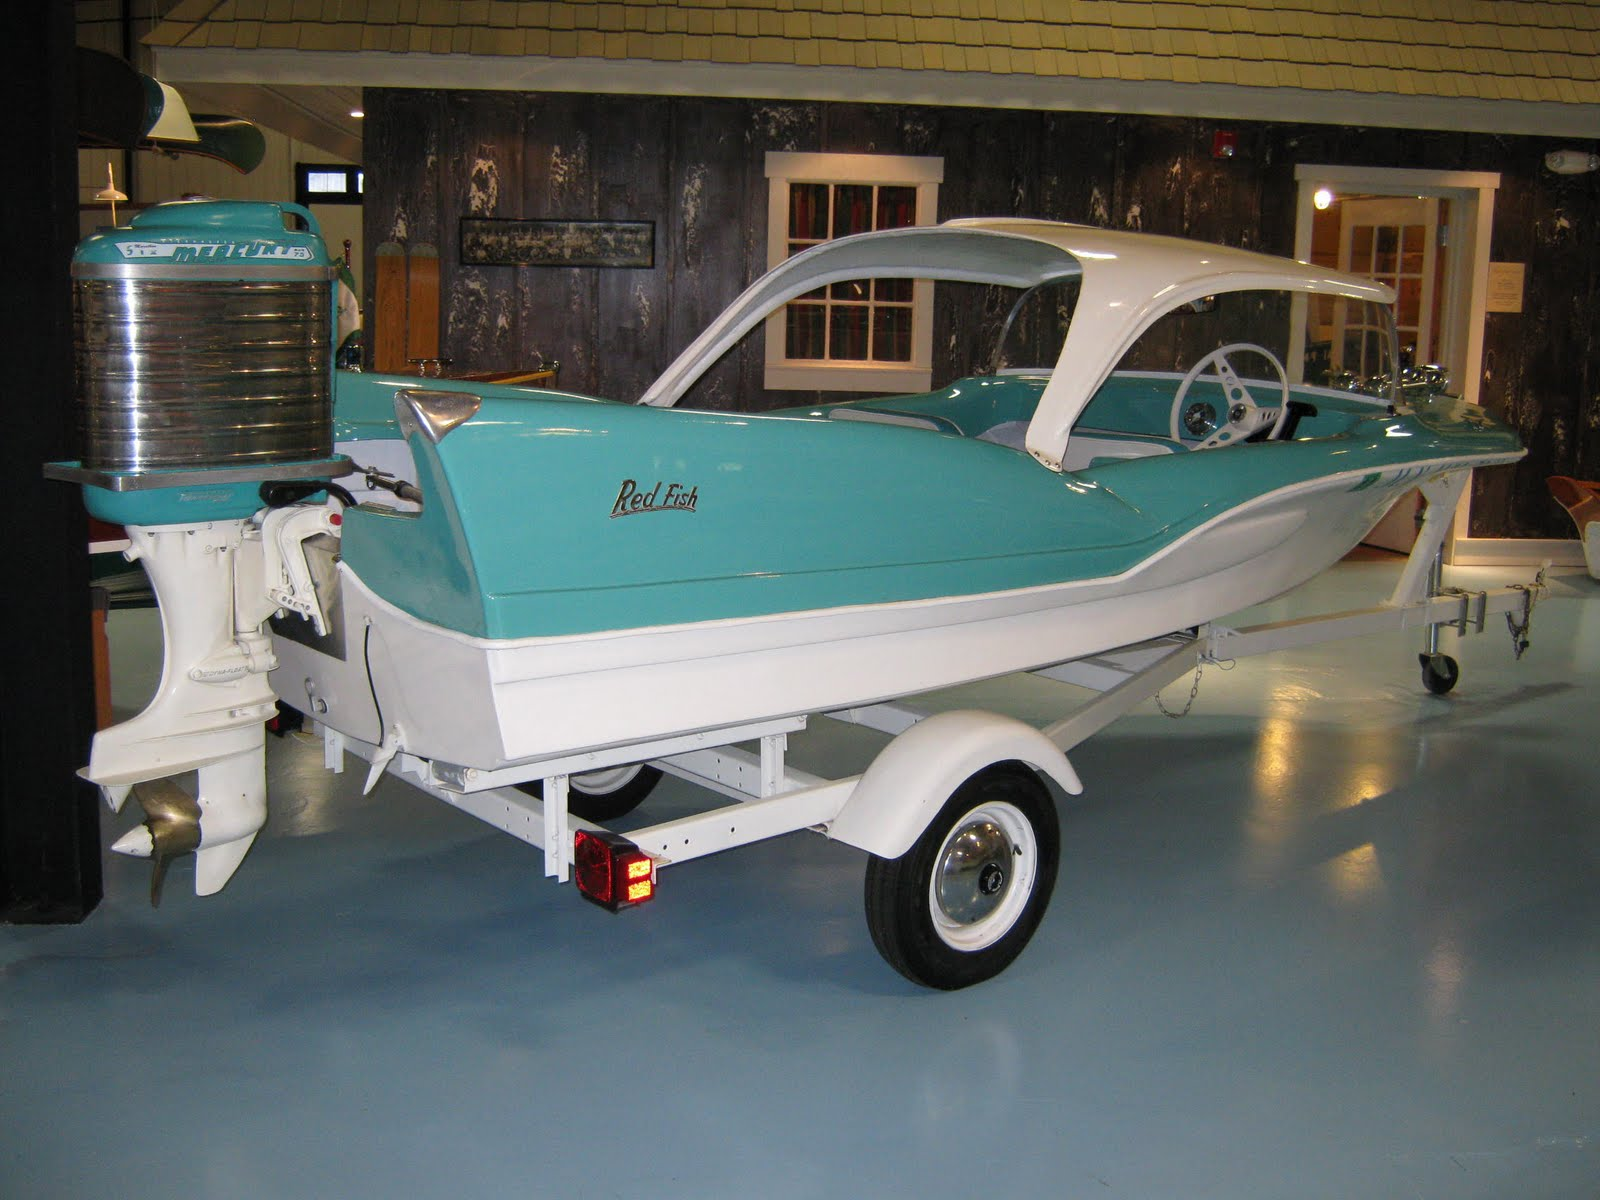 Minnesota lakes maritime museum part 2 classic boats for Classic motors for sale